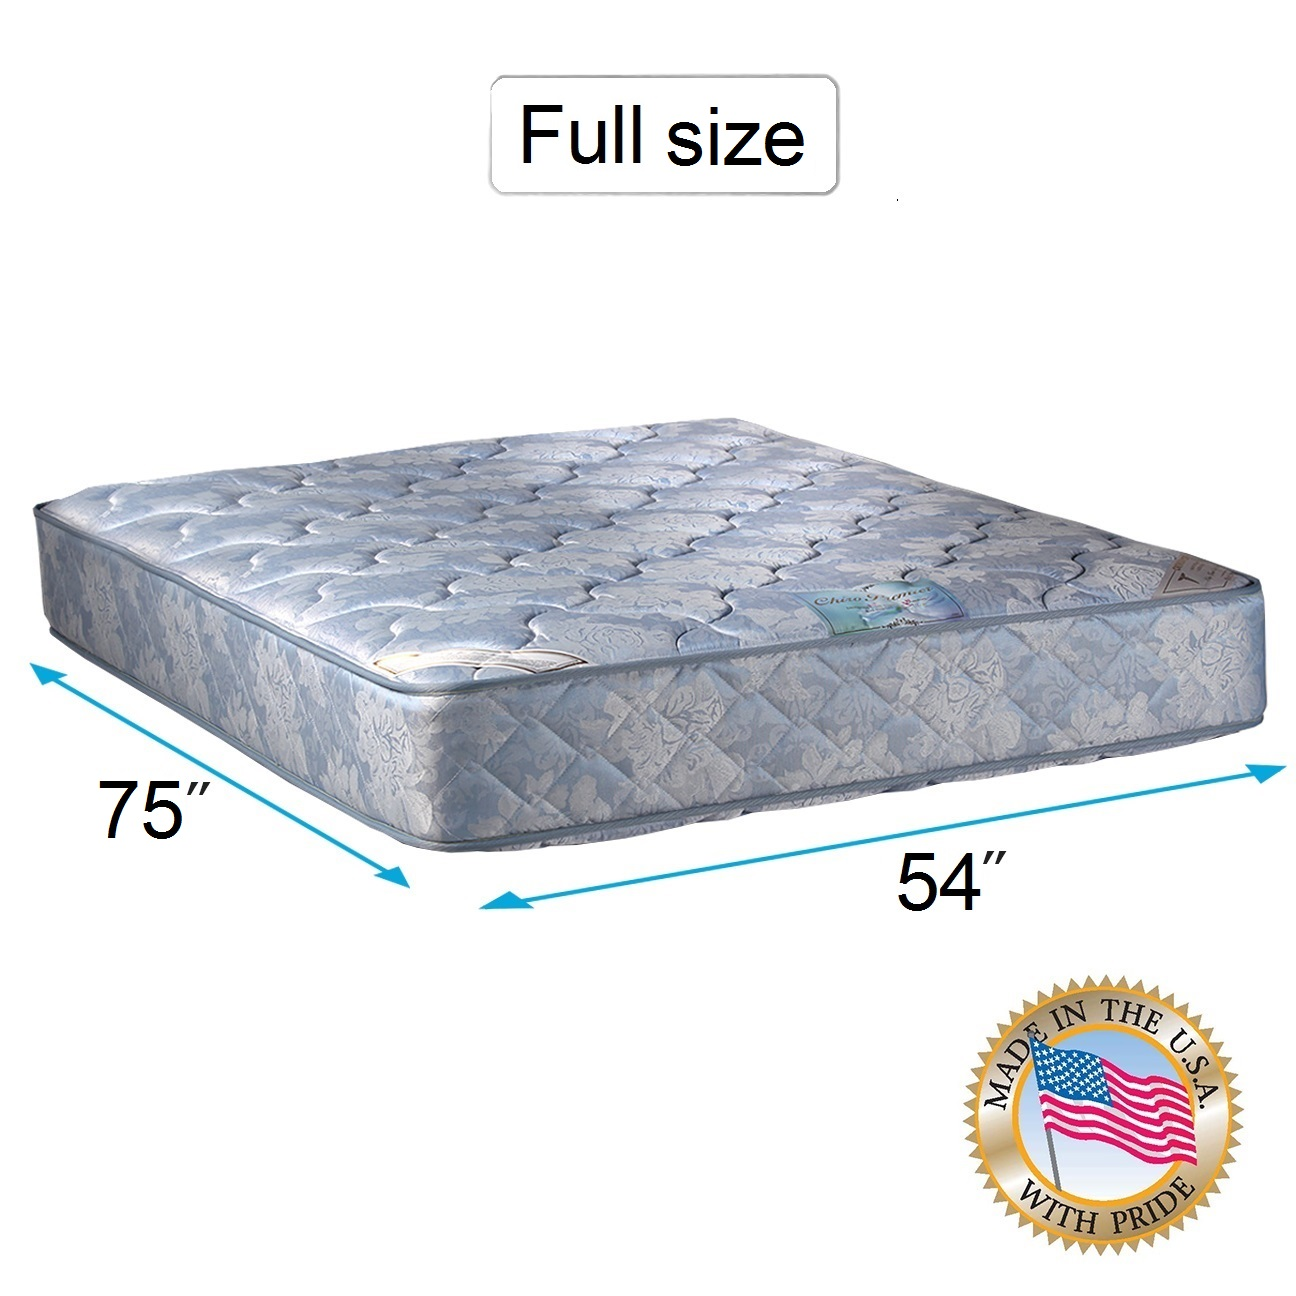 Chiro Premier 2-Sided Orthopedic (Blue Color) Full Mattress Only with Mattress Cover Protector Included - Spine Support, Fully Assembled, Innerspring coils, Long Lasting by Dream Solutions USA